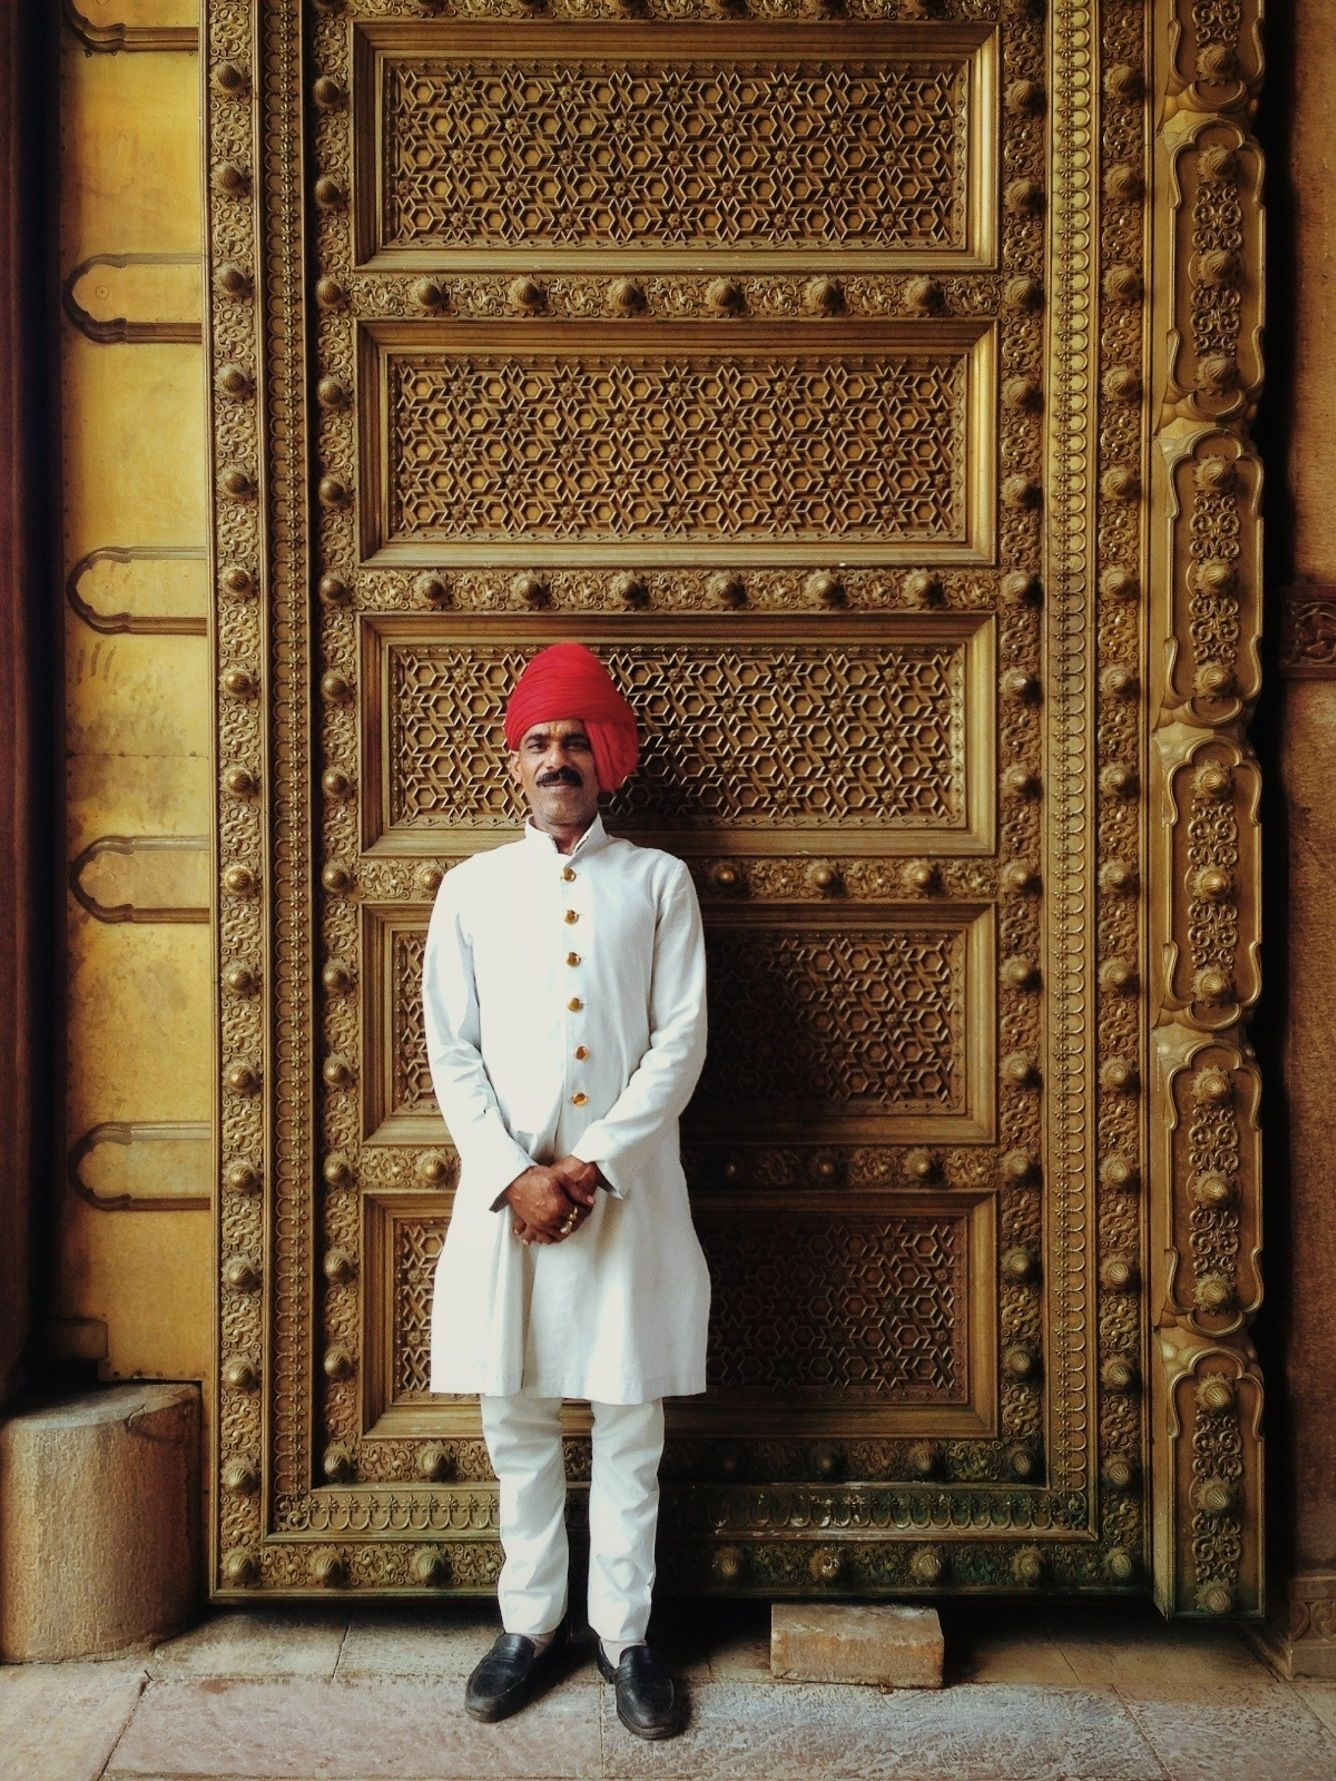 Jaipur India Portrait Geoffduncan Vsco High Quality Wallpapers India Wallpaper